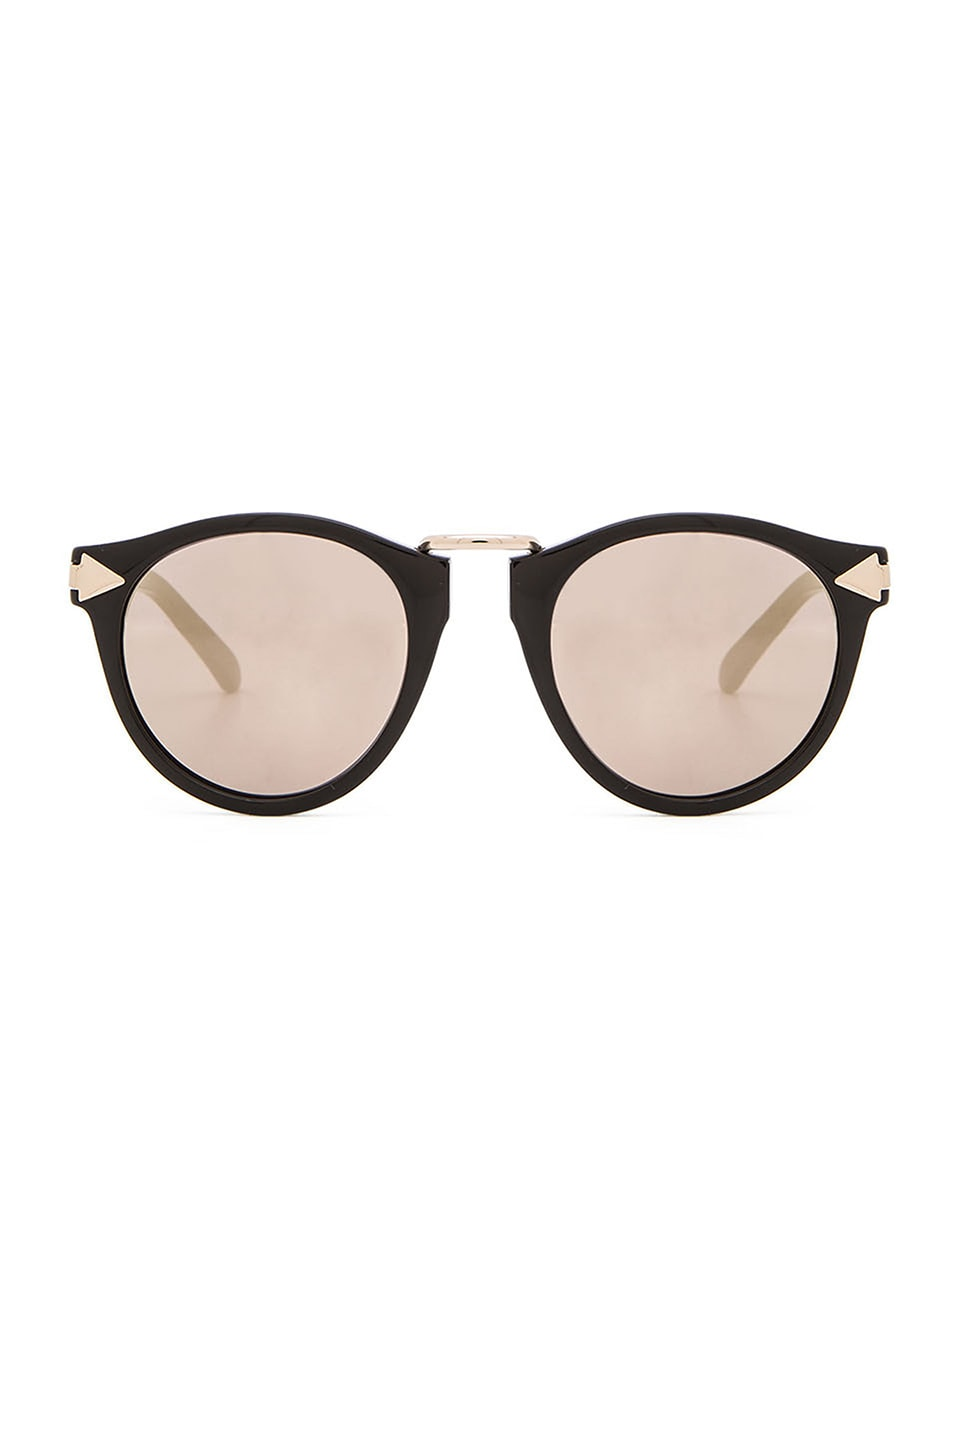 Karen Walker Superstars Helter Skelter in Black & Gold Mirror